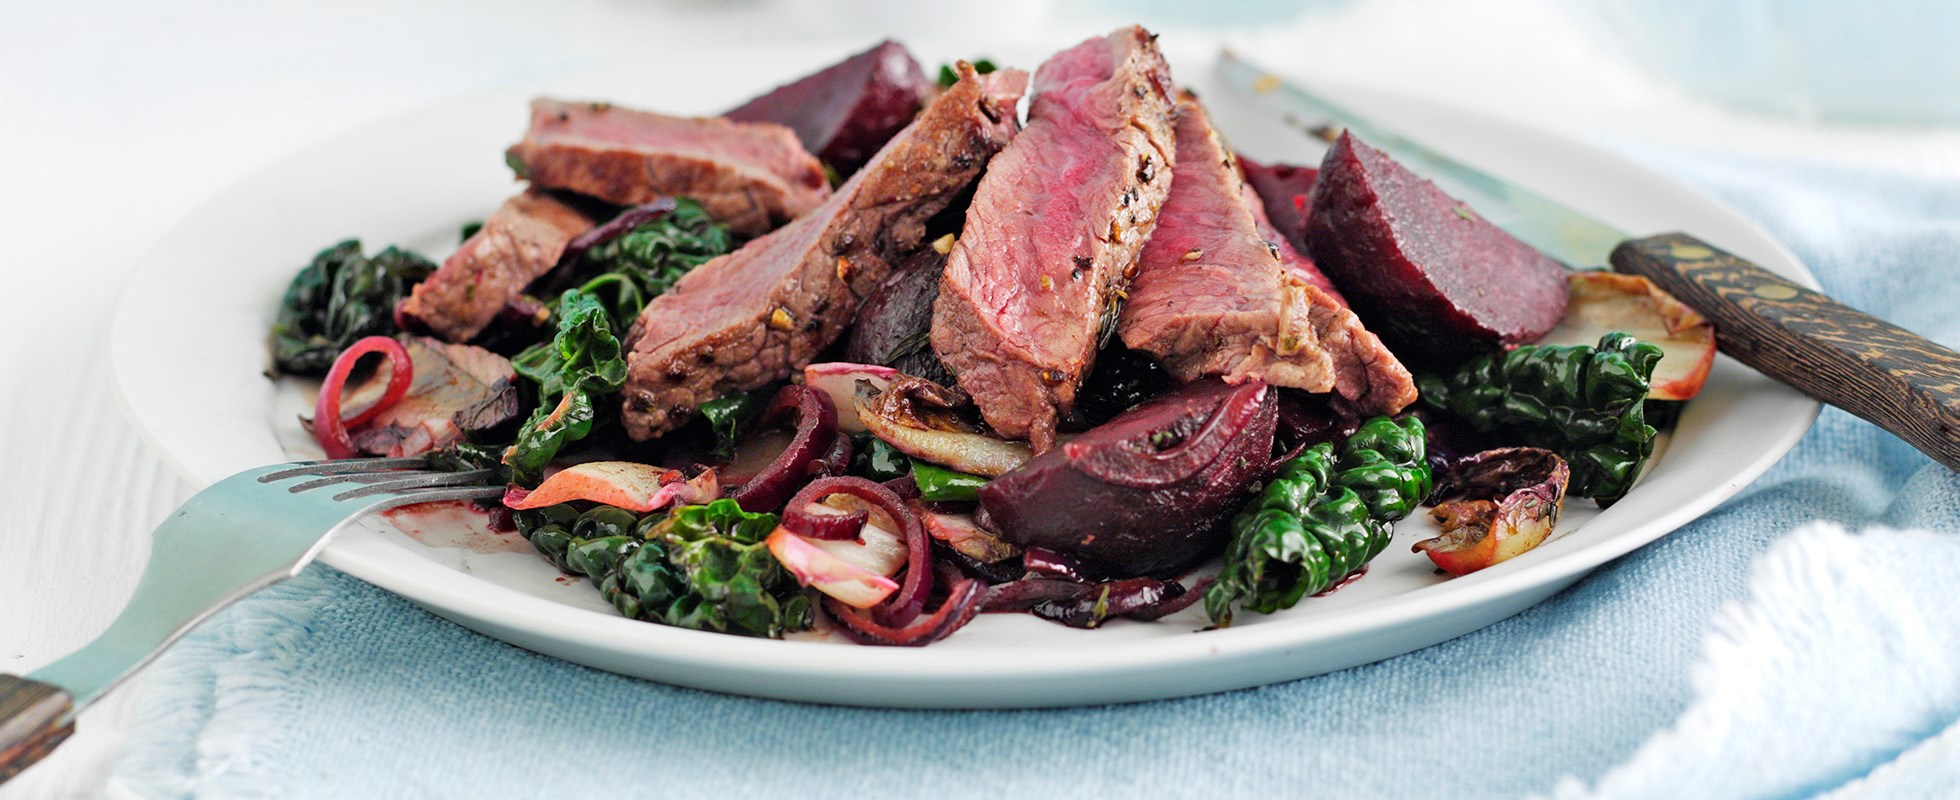 steak with beets